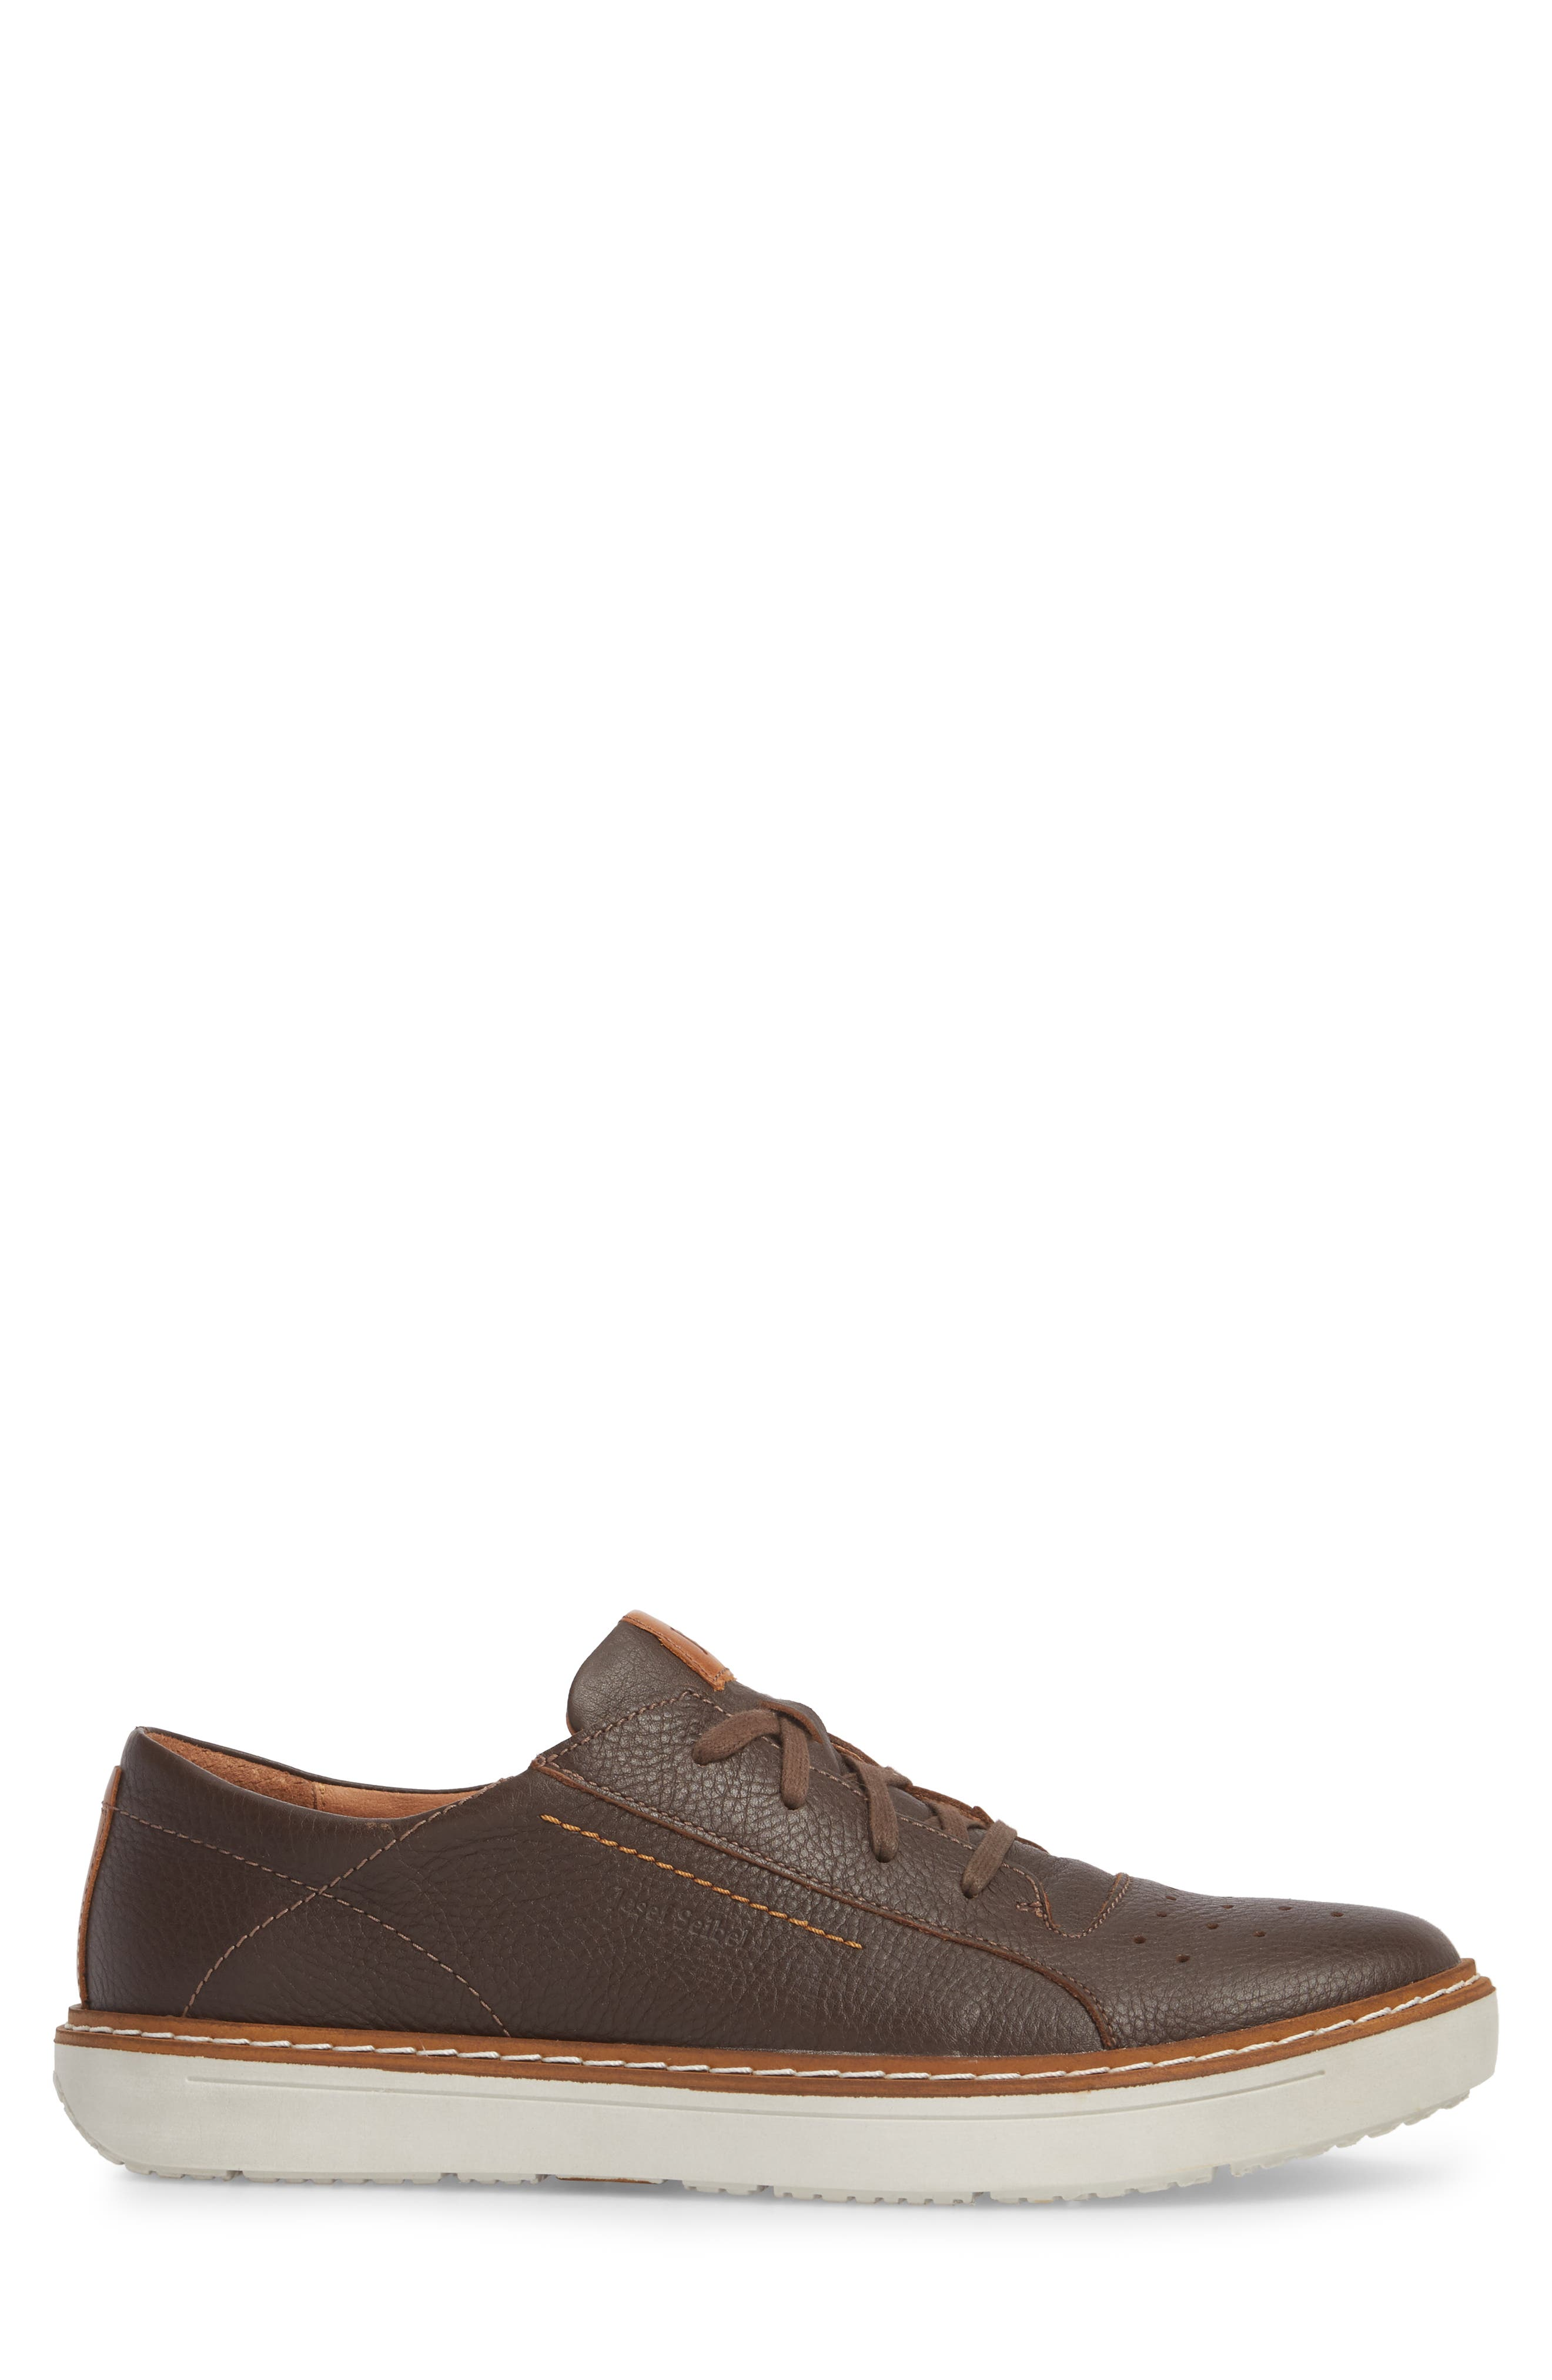 Quentin 03 Low Top Sneaker,                             Alternate thumbnail 3, color,                             Brown Kombi Leather